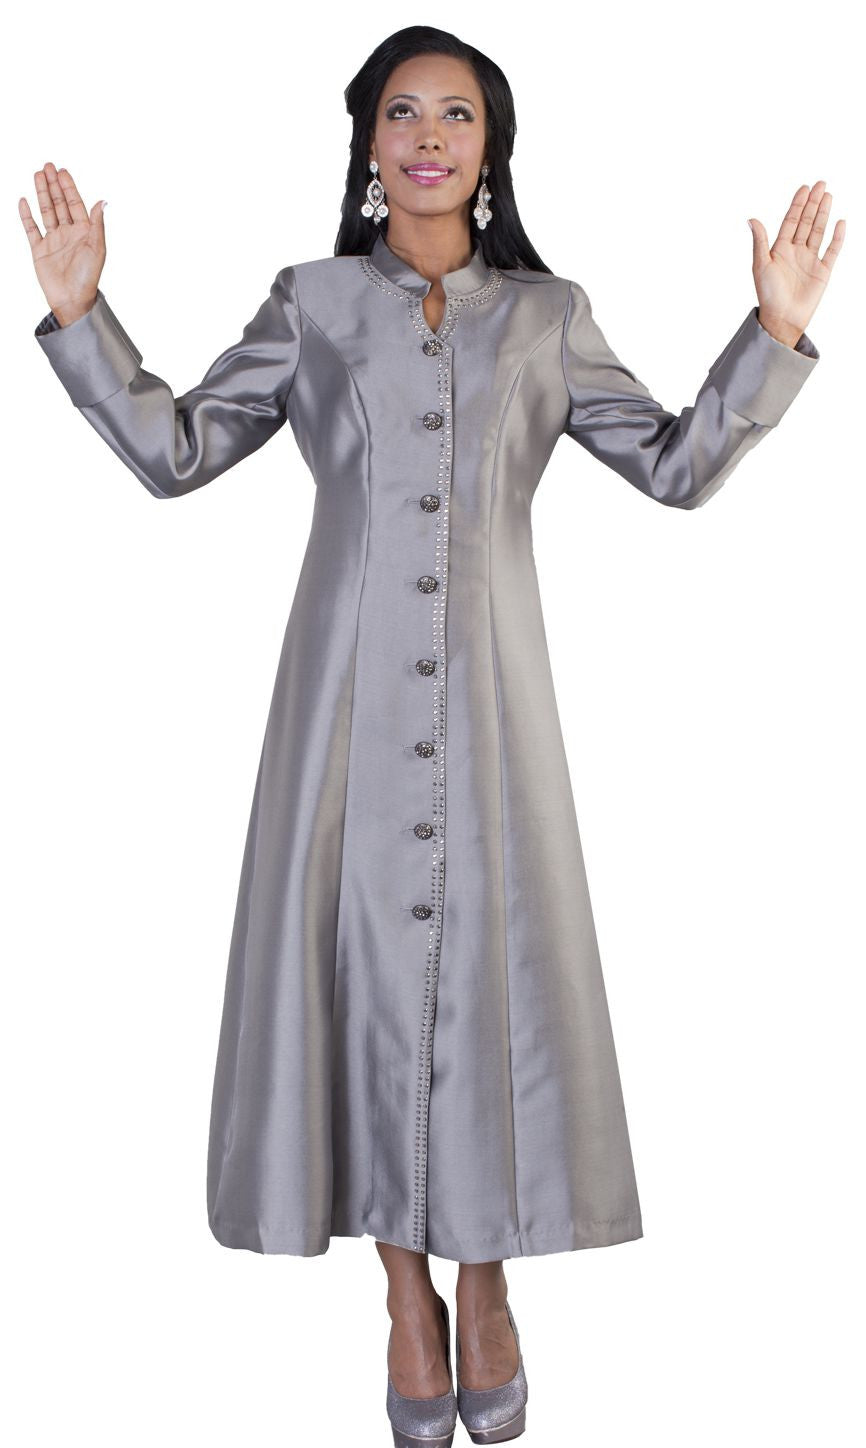 Tally Taylor Robe 4445-Silver - Church Suits For Less